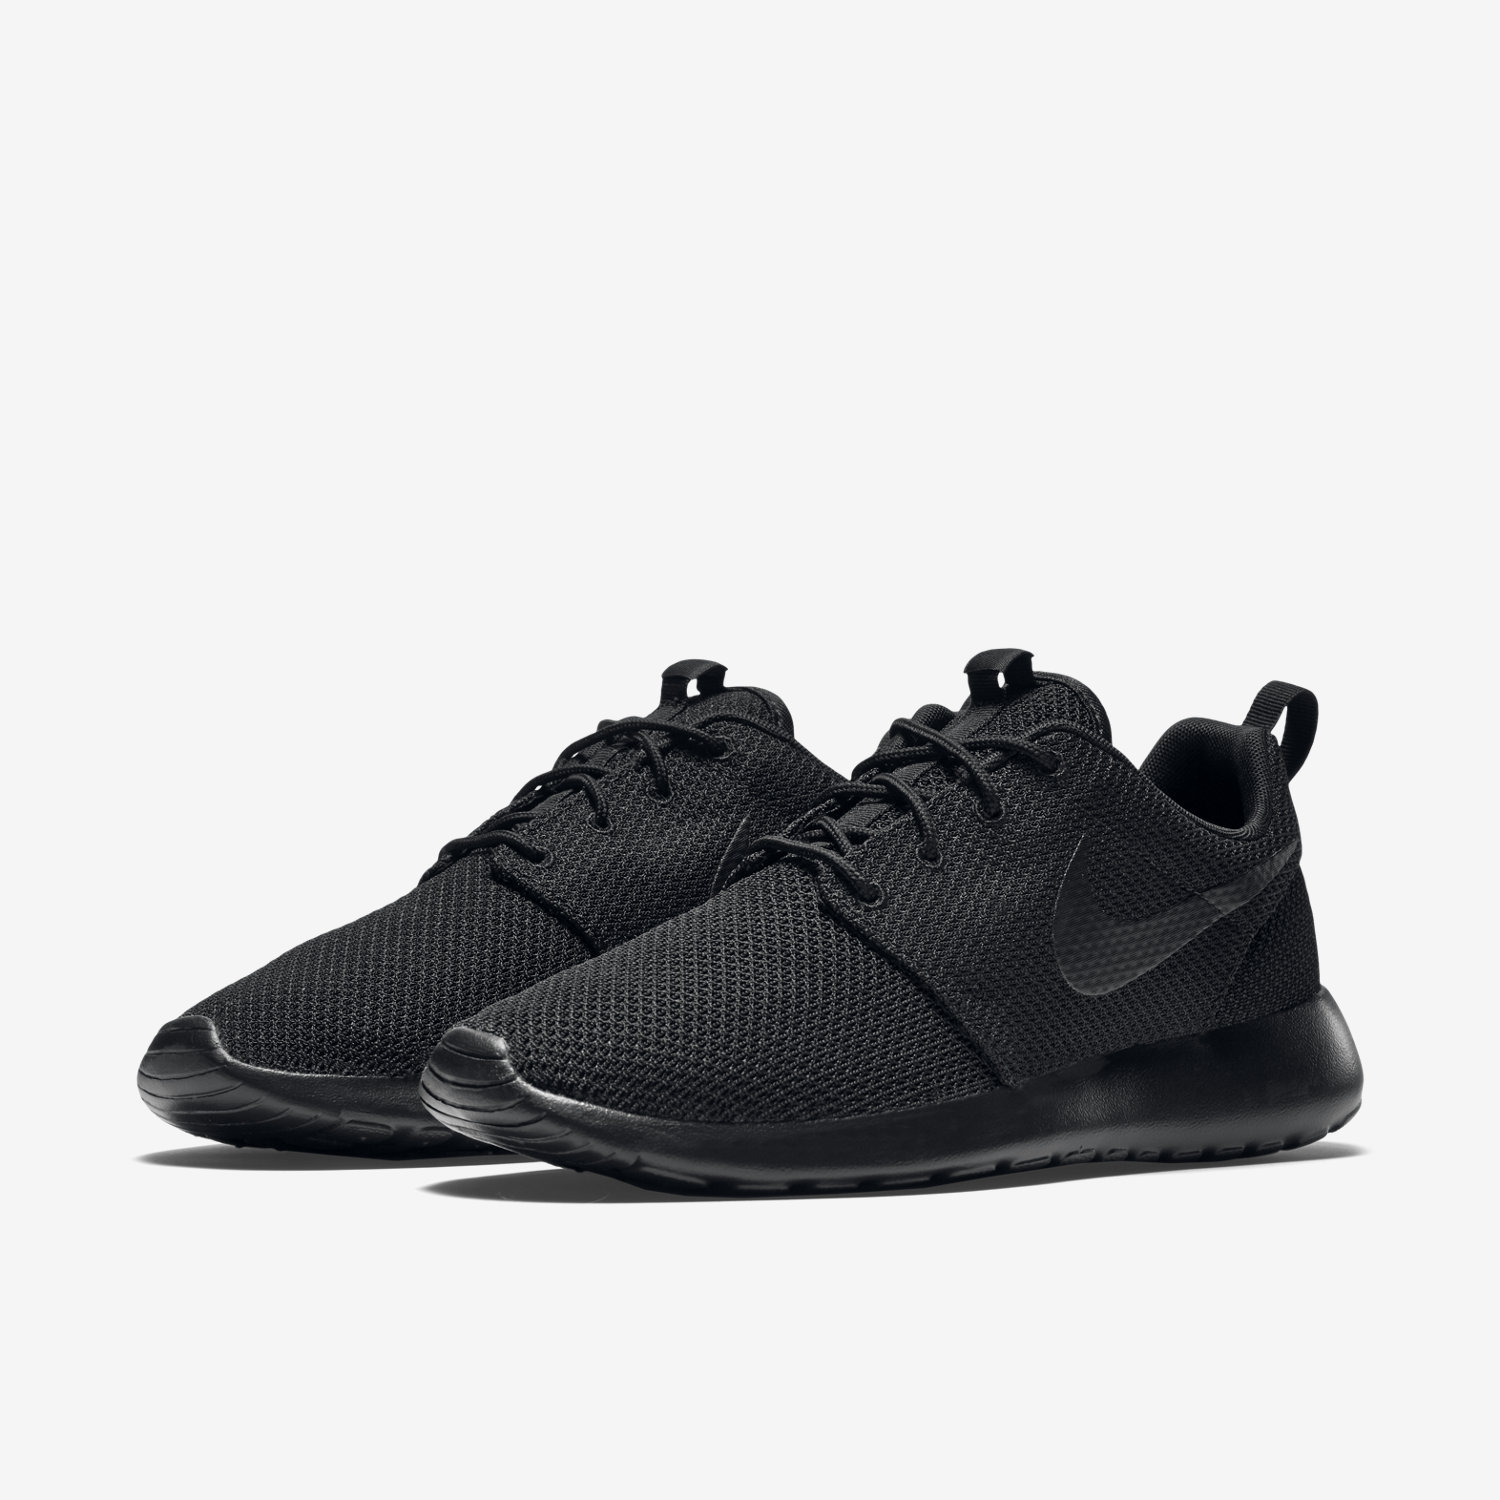 nike flex fury 2 2, Nike, Shoes at 6pm